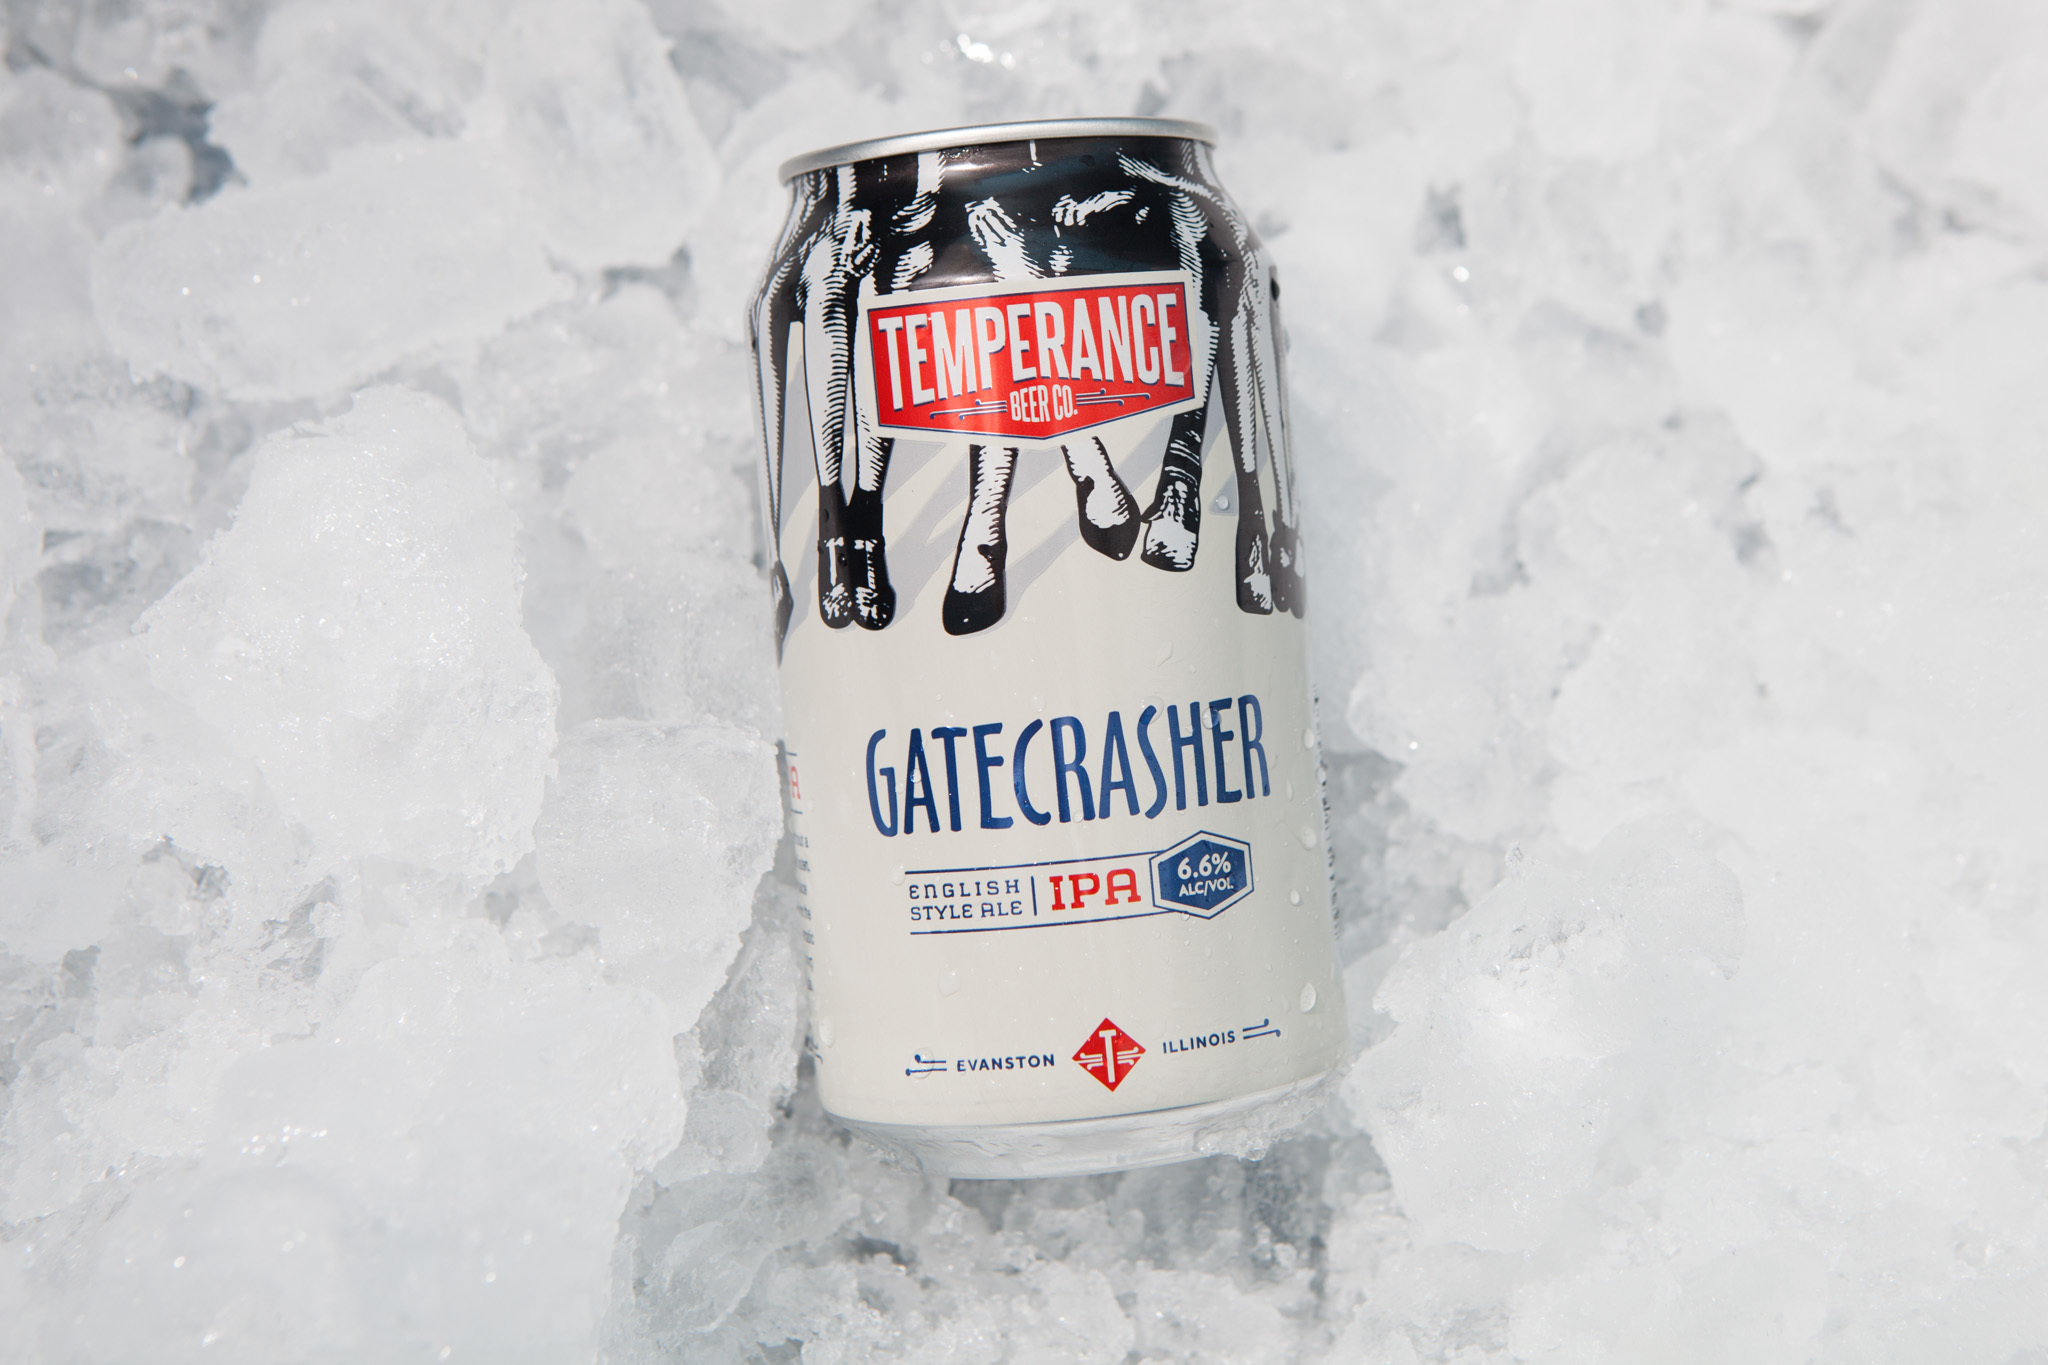 Temperance Brewing's Gatecrasher English IPA